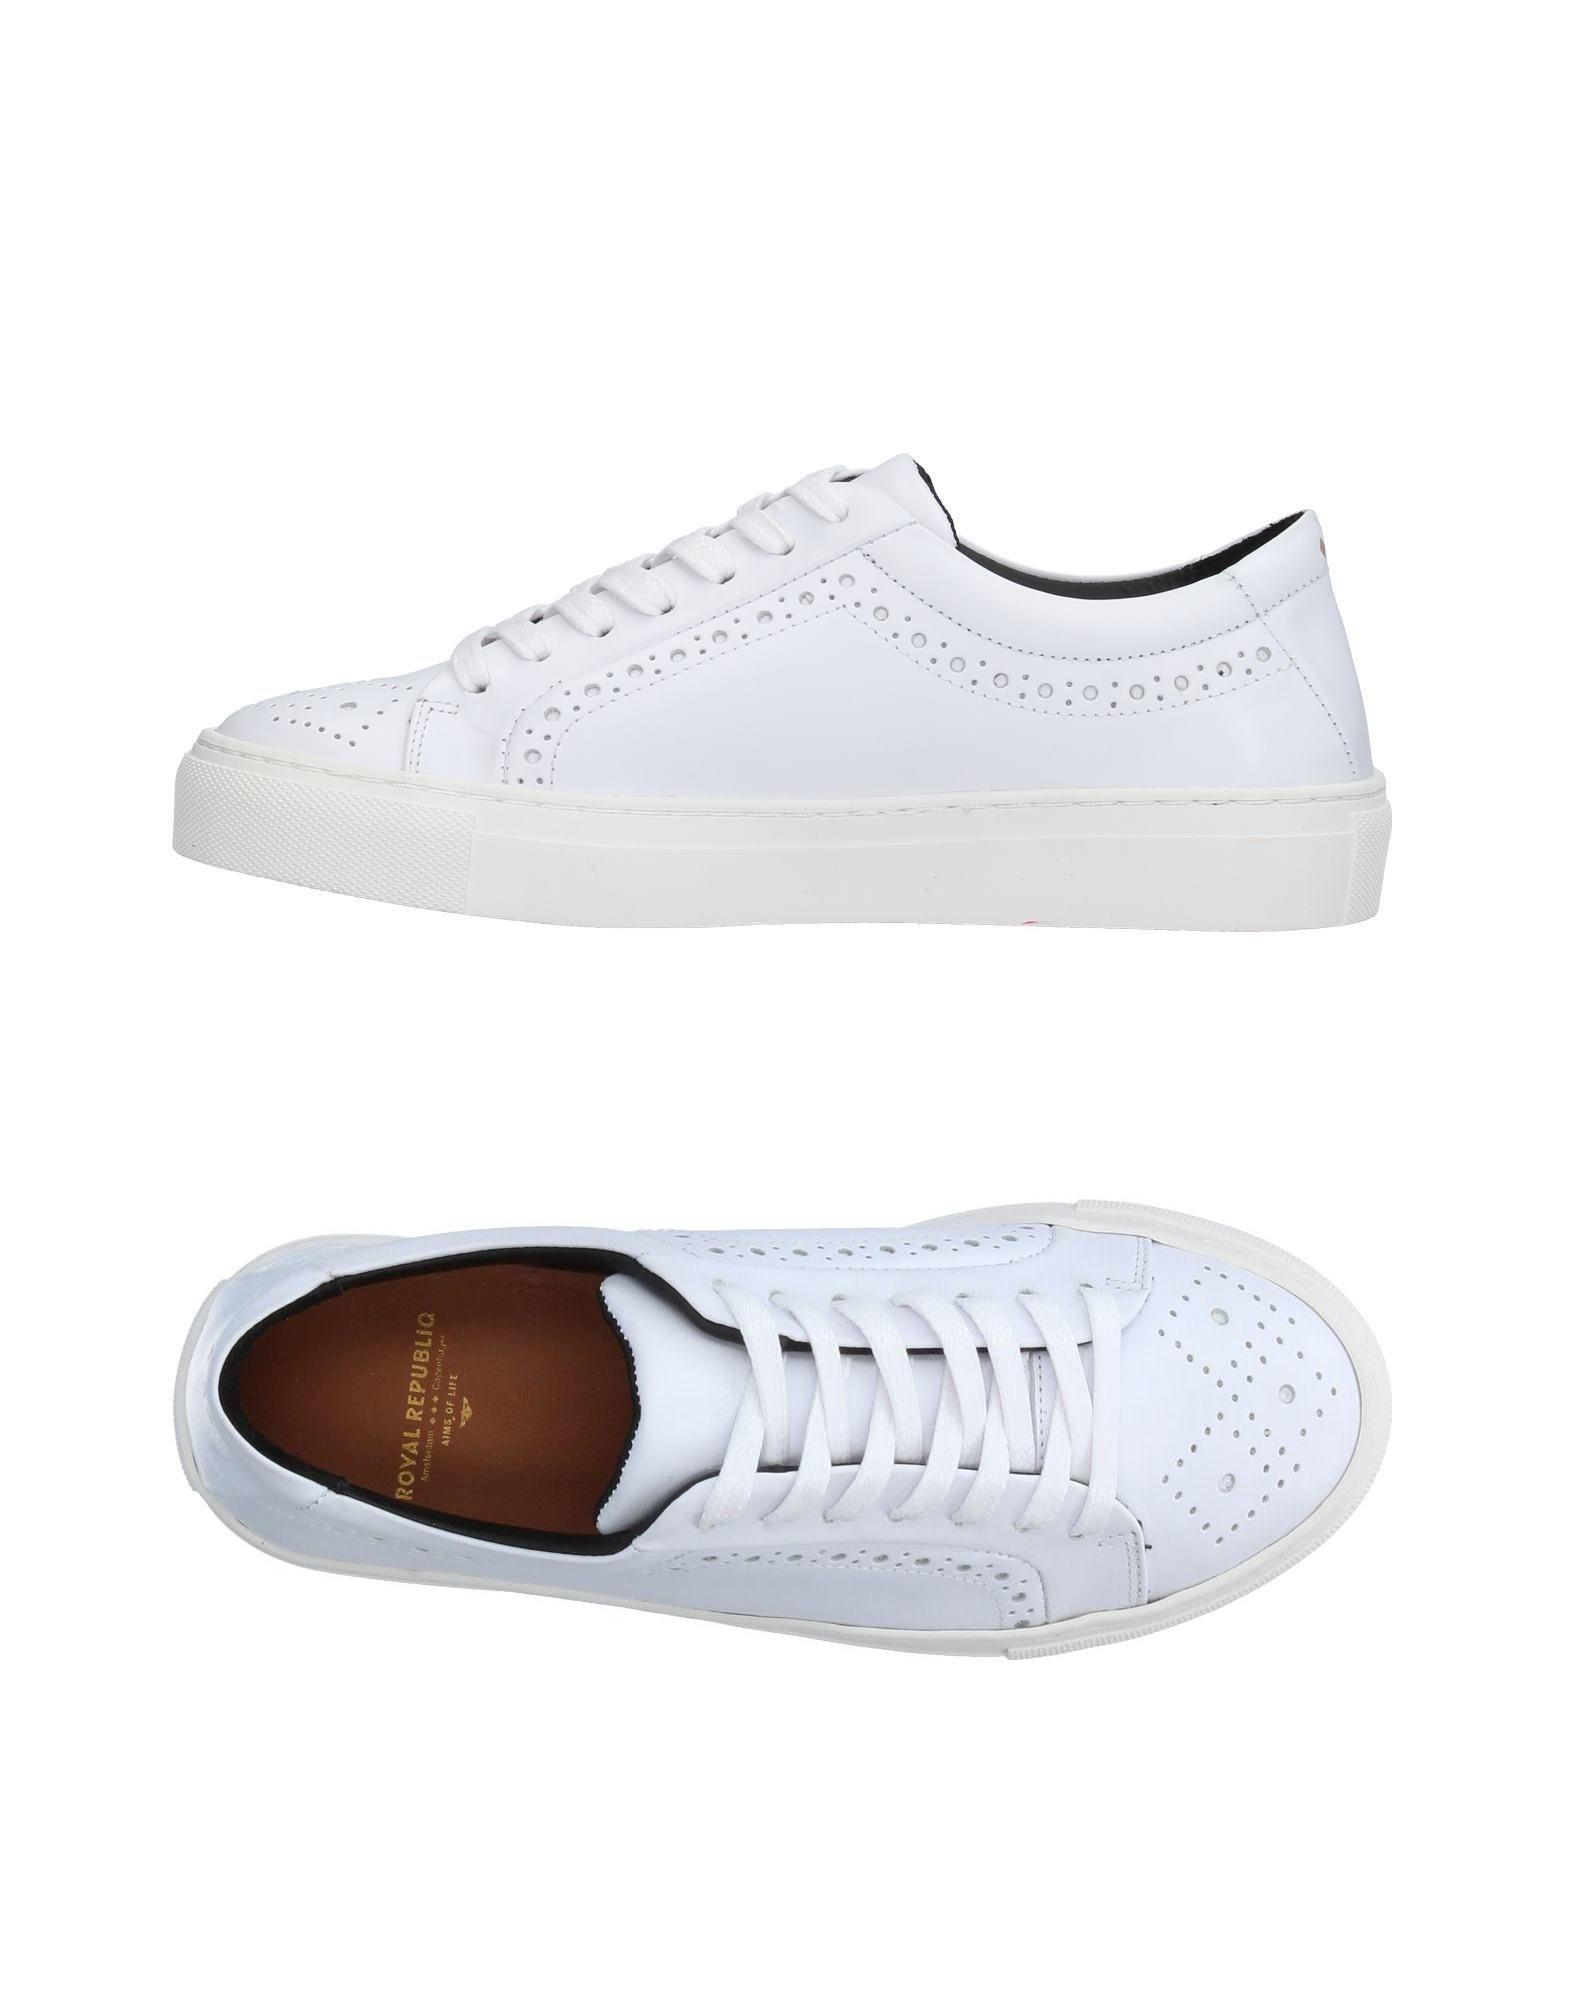 royal republiq low tops sneakers in white lyst